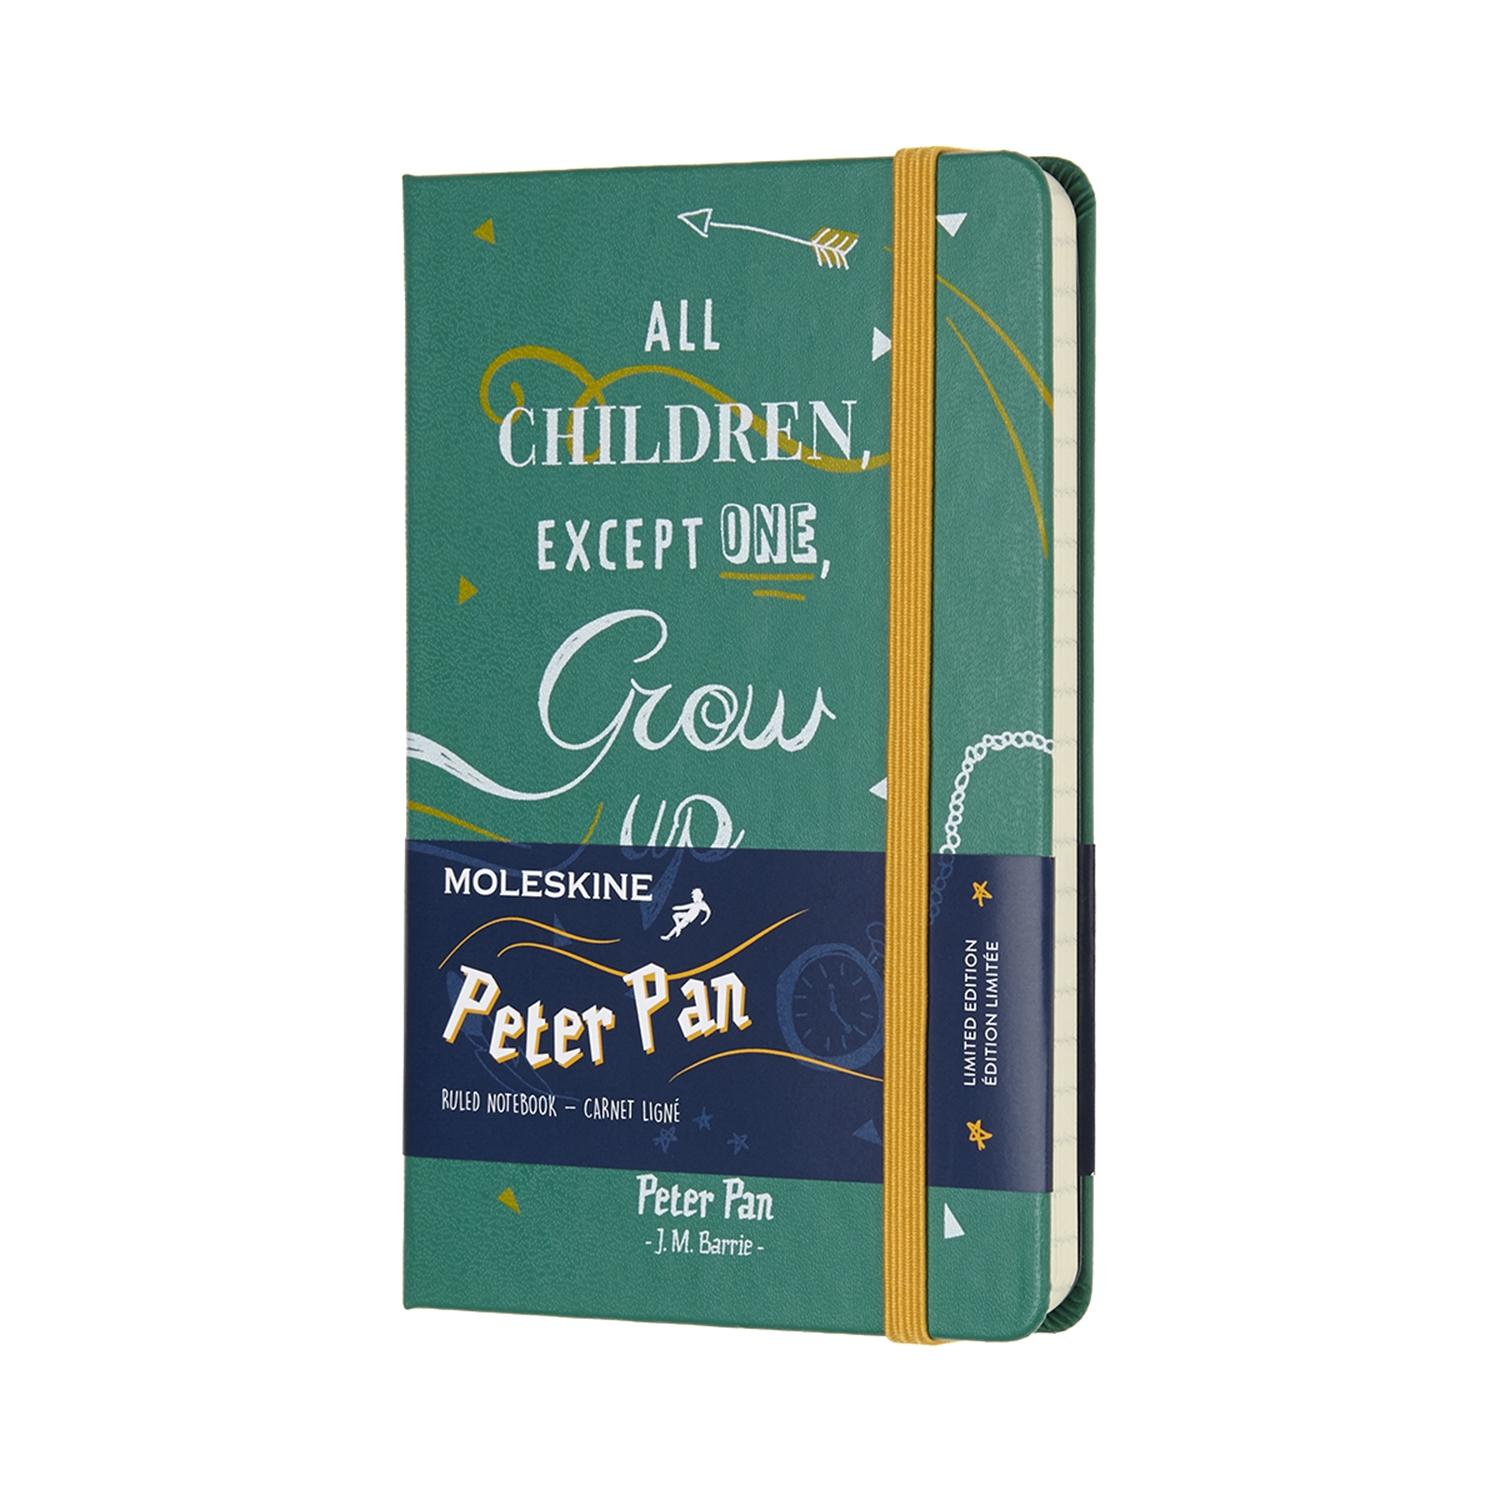 Peter Pan - Limited Edition Notebook - Pocket Ruled cerulean Blue by MOLESKINE